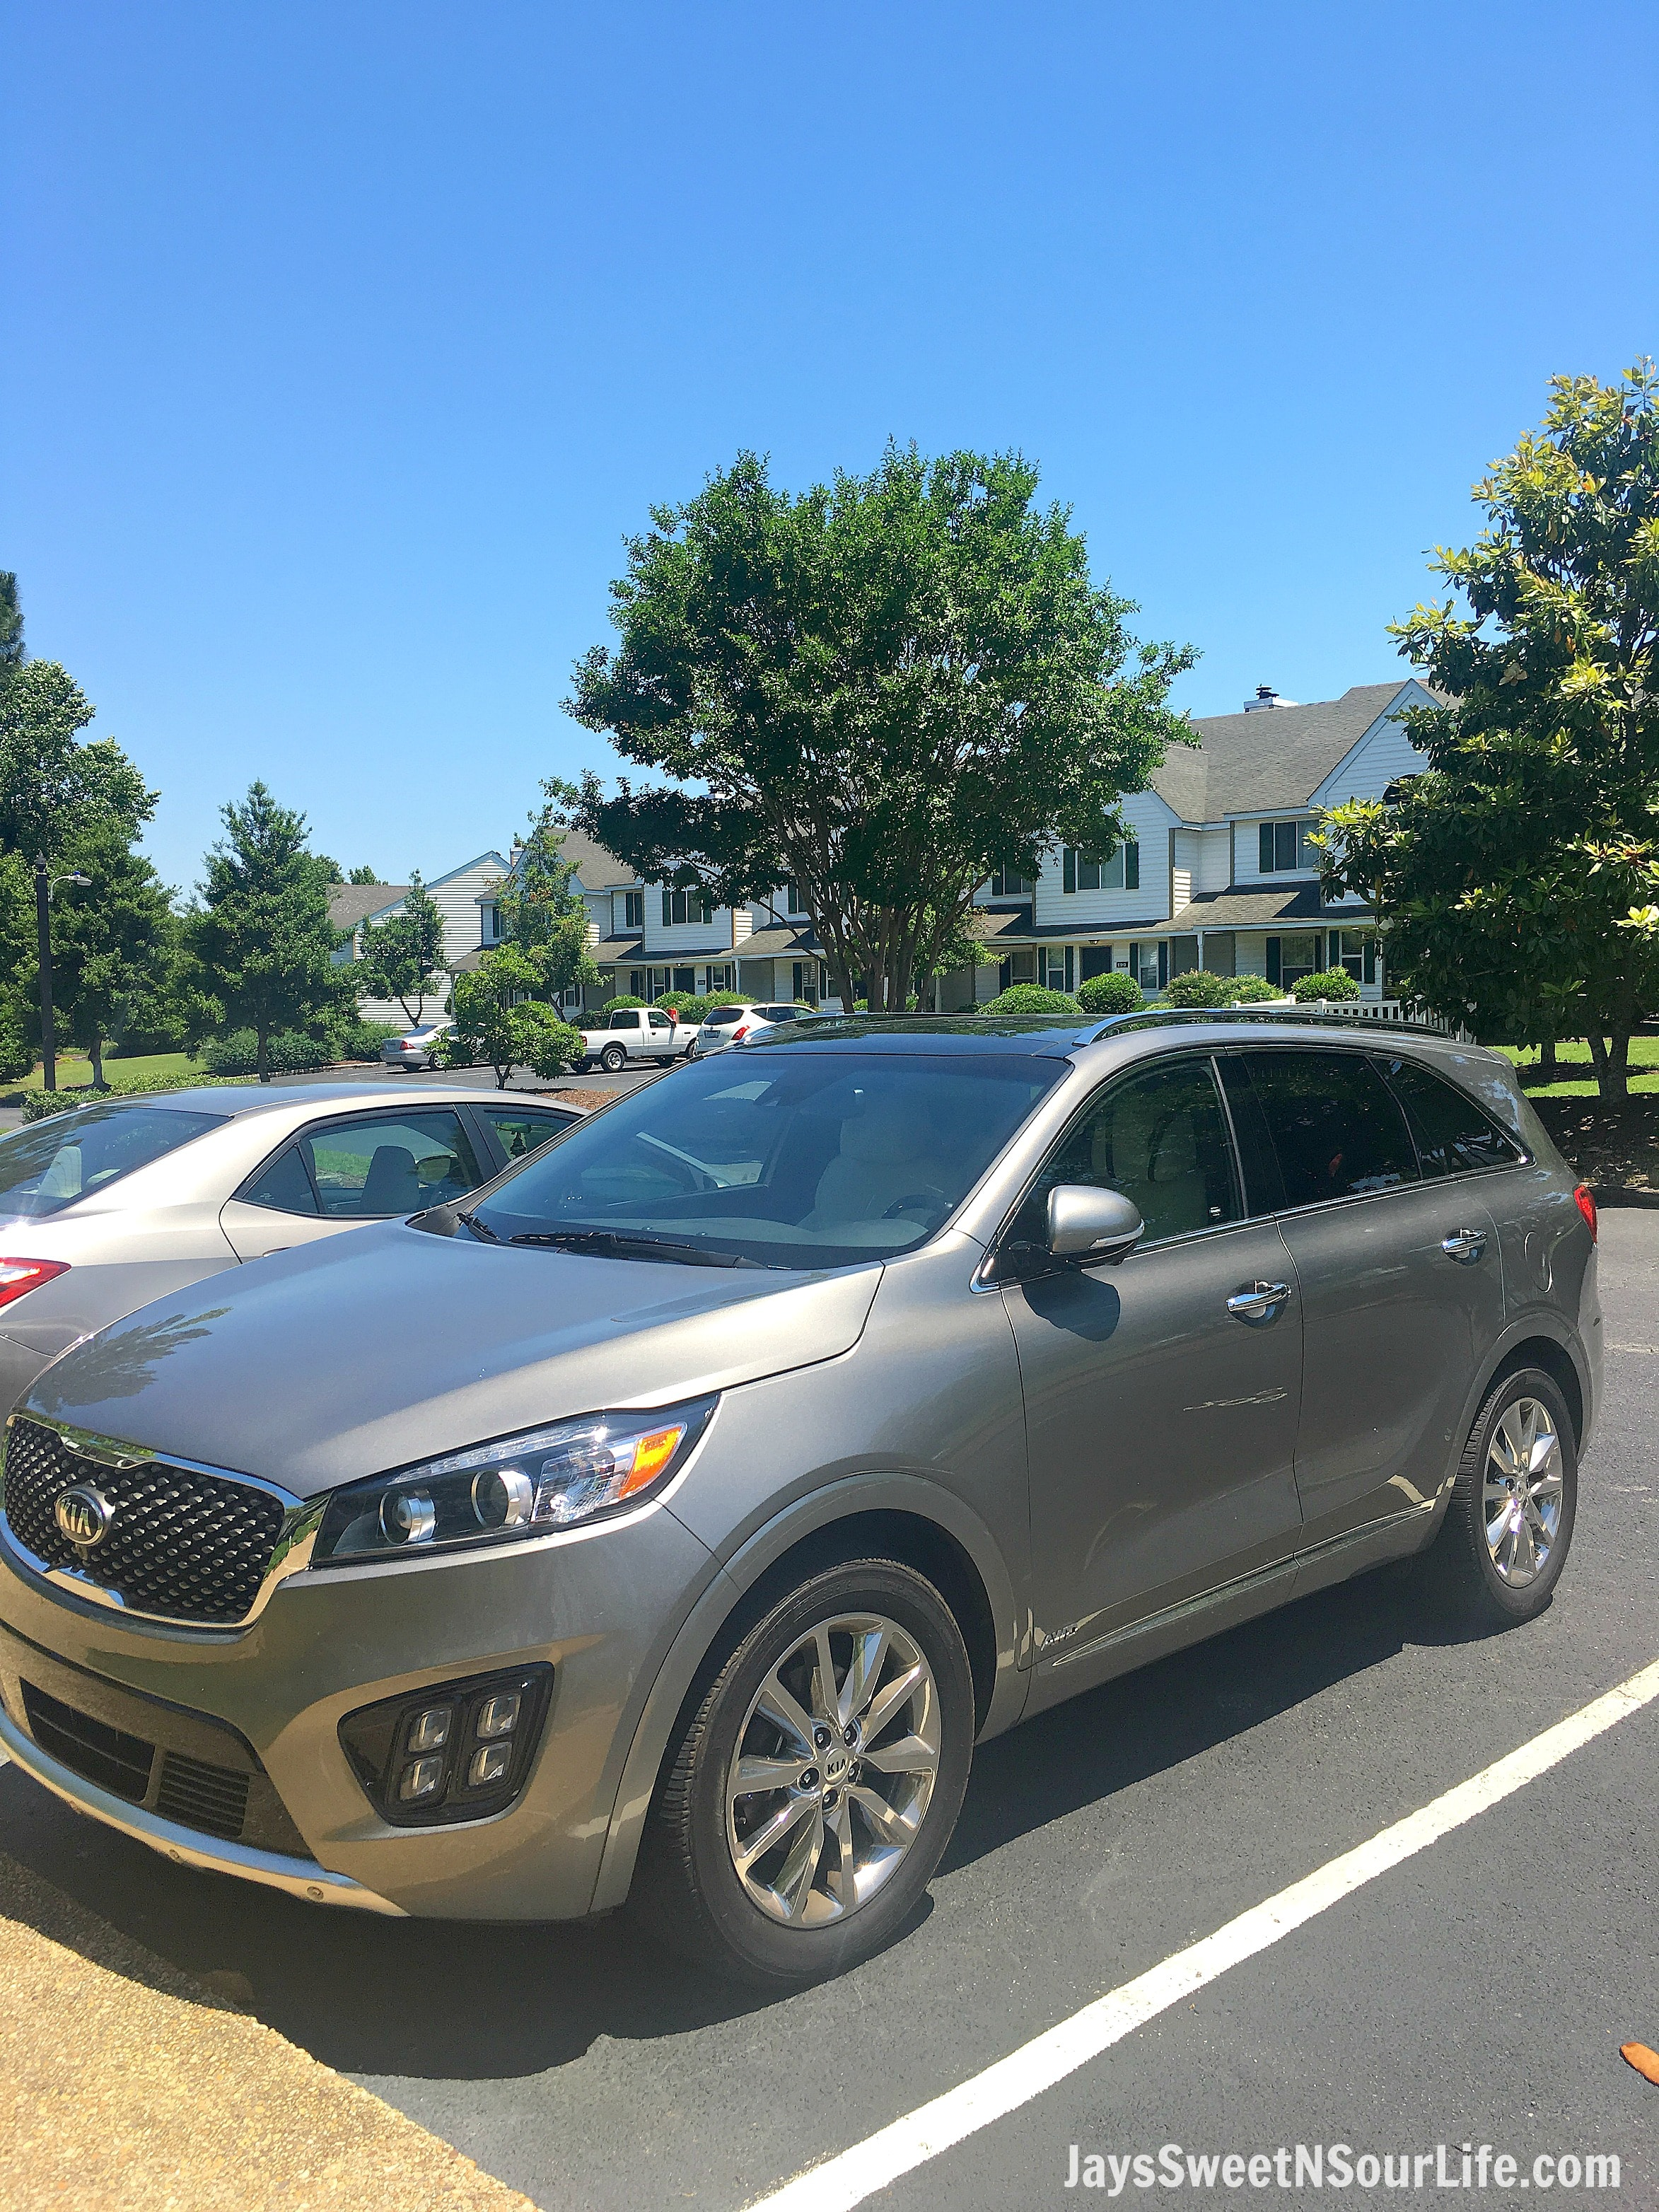 For our road trip we choose to take the 2017 kia sorento crossover suv which seats 7 very comfortably this crossover suv sports adjustable three rows of